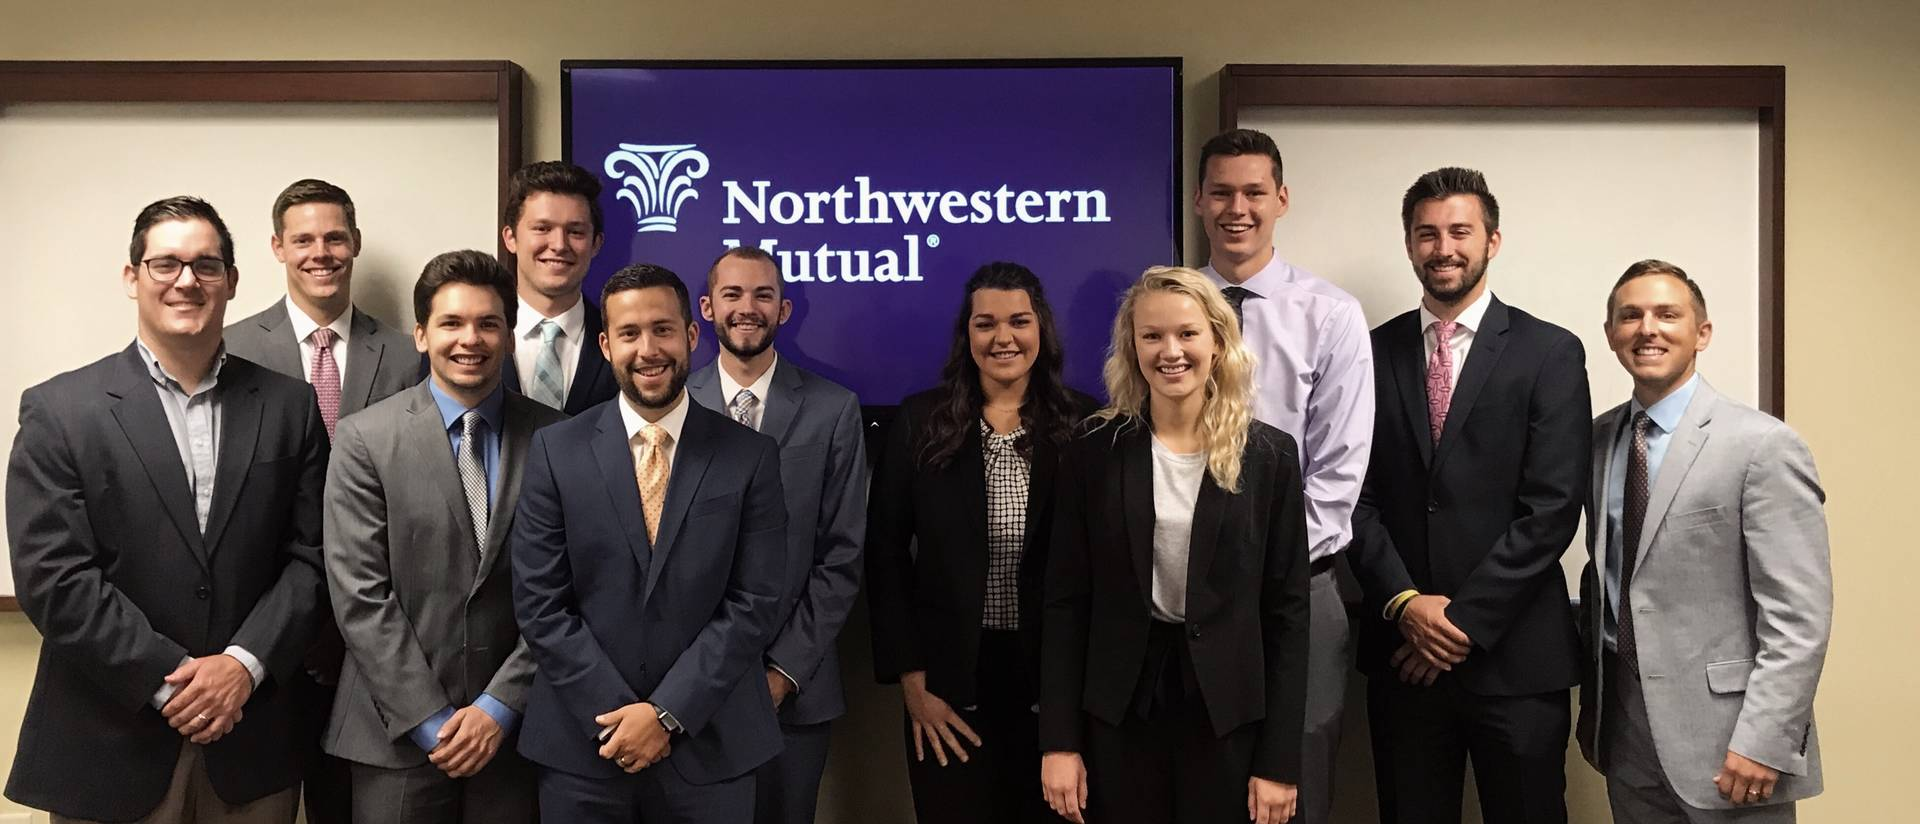 UW-Eau Claire Northwestern Mutual intern/grad team